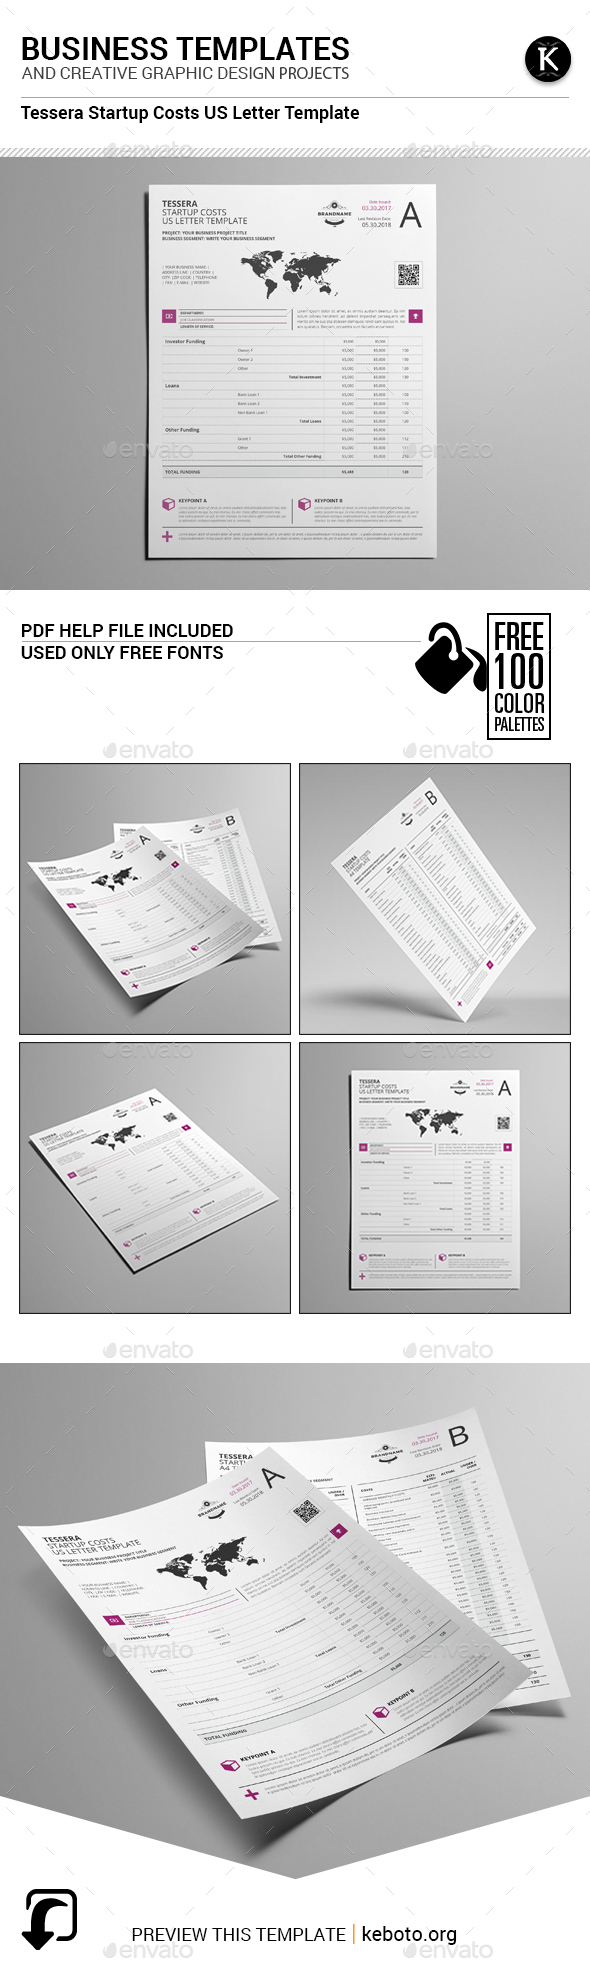 Tessera Startup Costs US Letter Template - Miscellaneous Print Templates